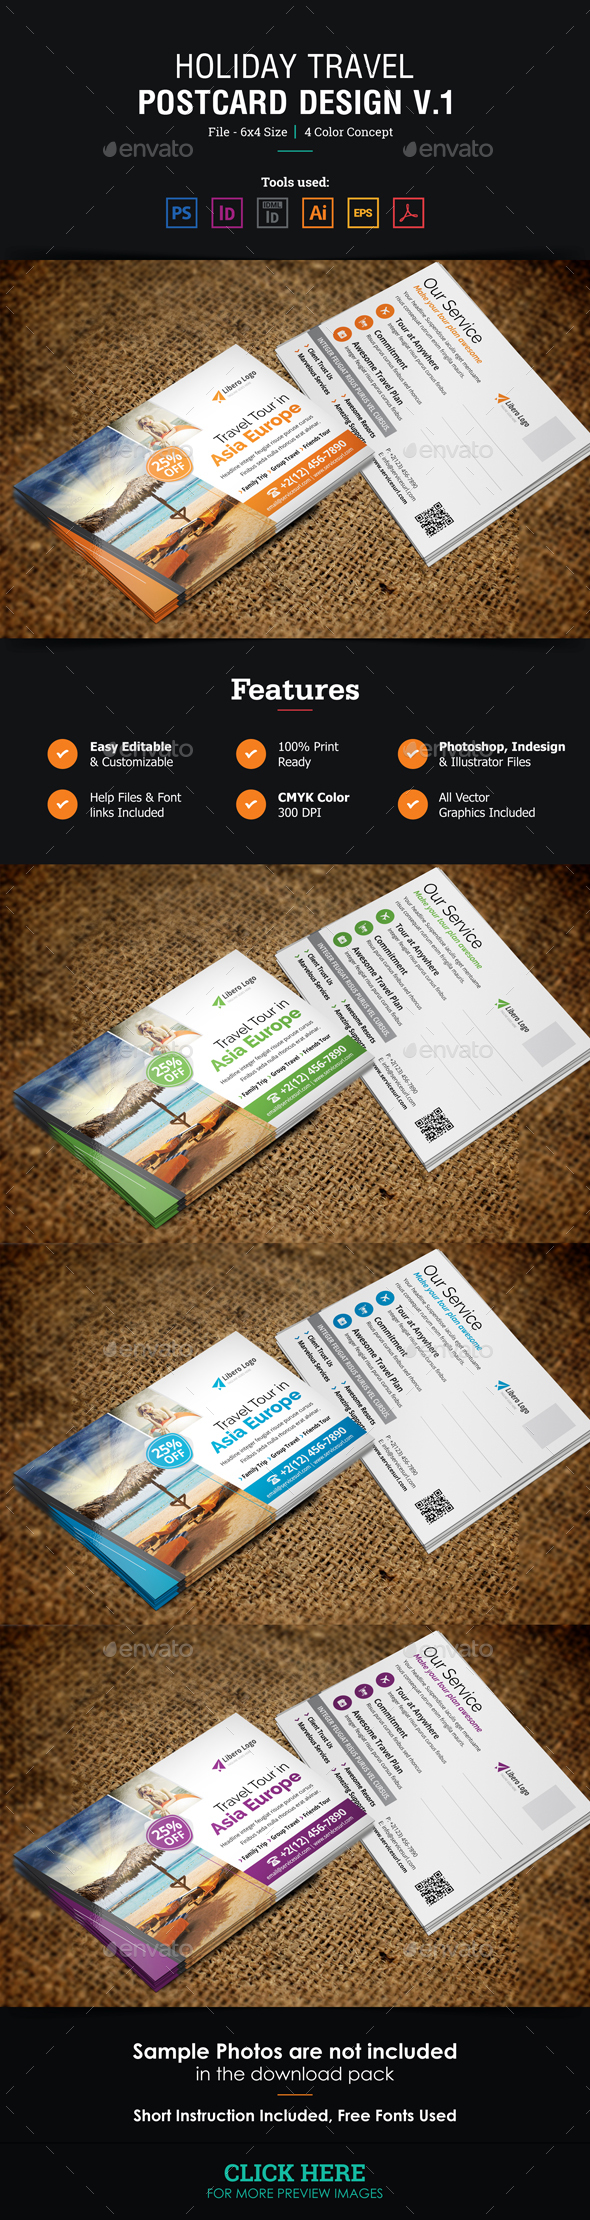 Holiday Travel Postcard Design v1 - Cards & Invites Print Templates